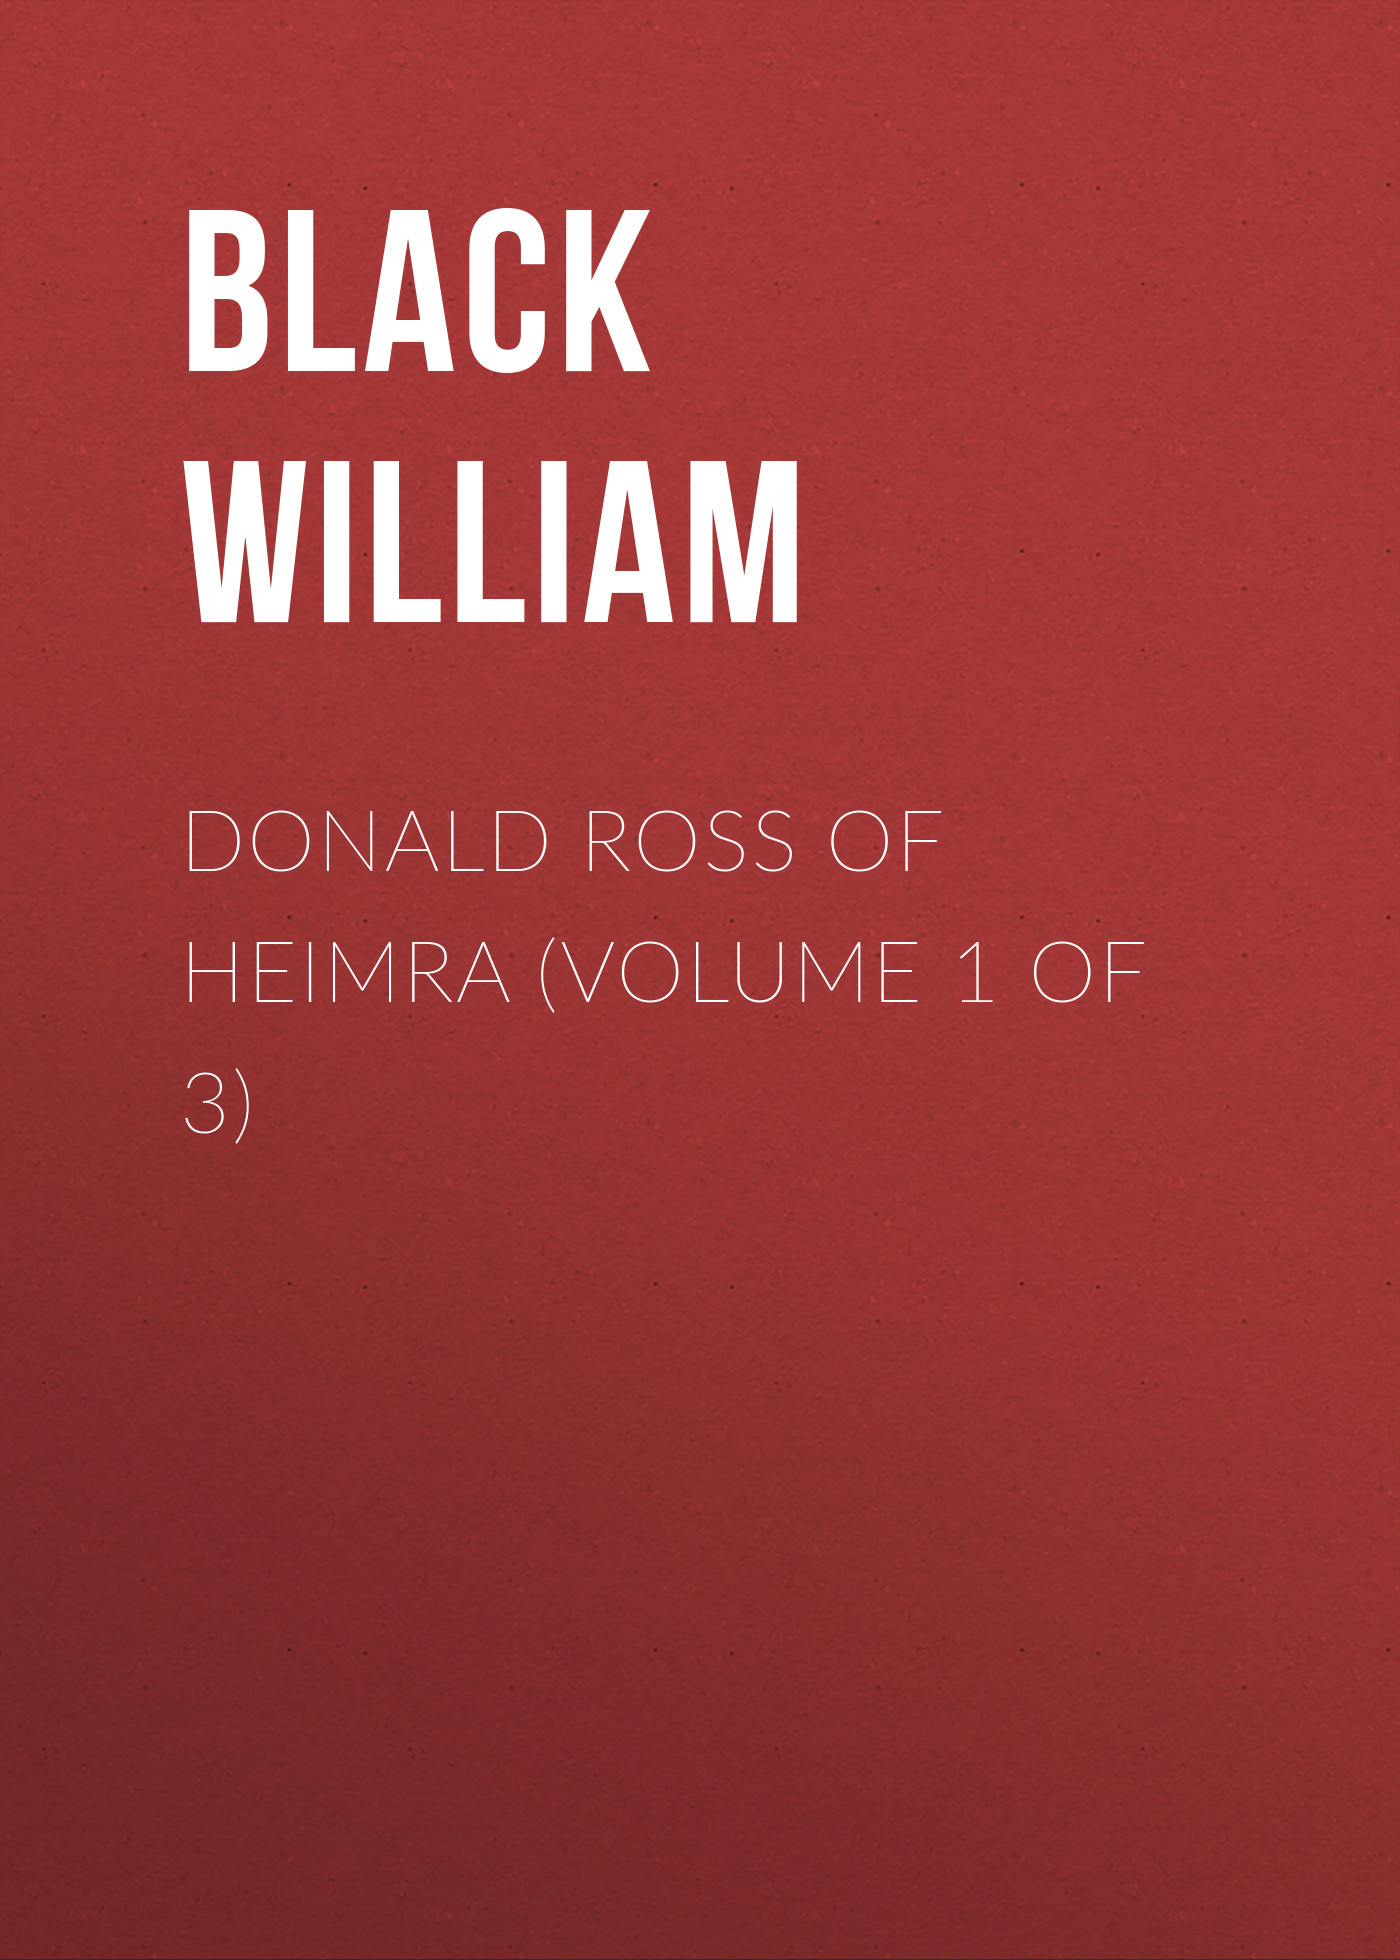 Black William Donald Ross of Heimra (Volume 1 of 3)